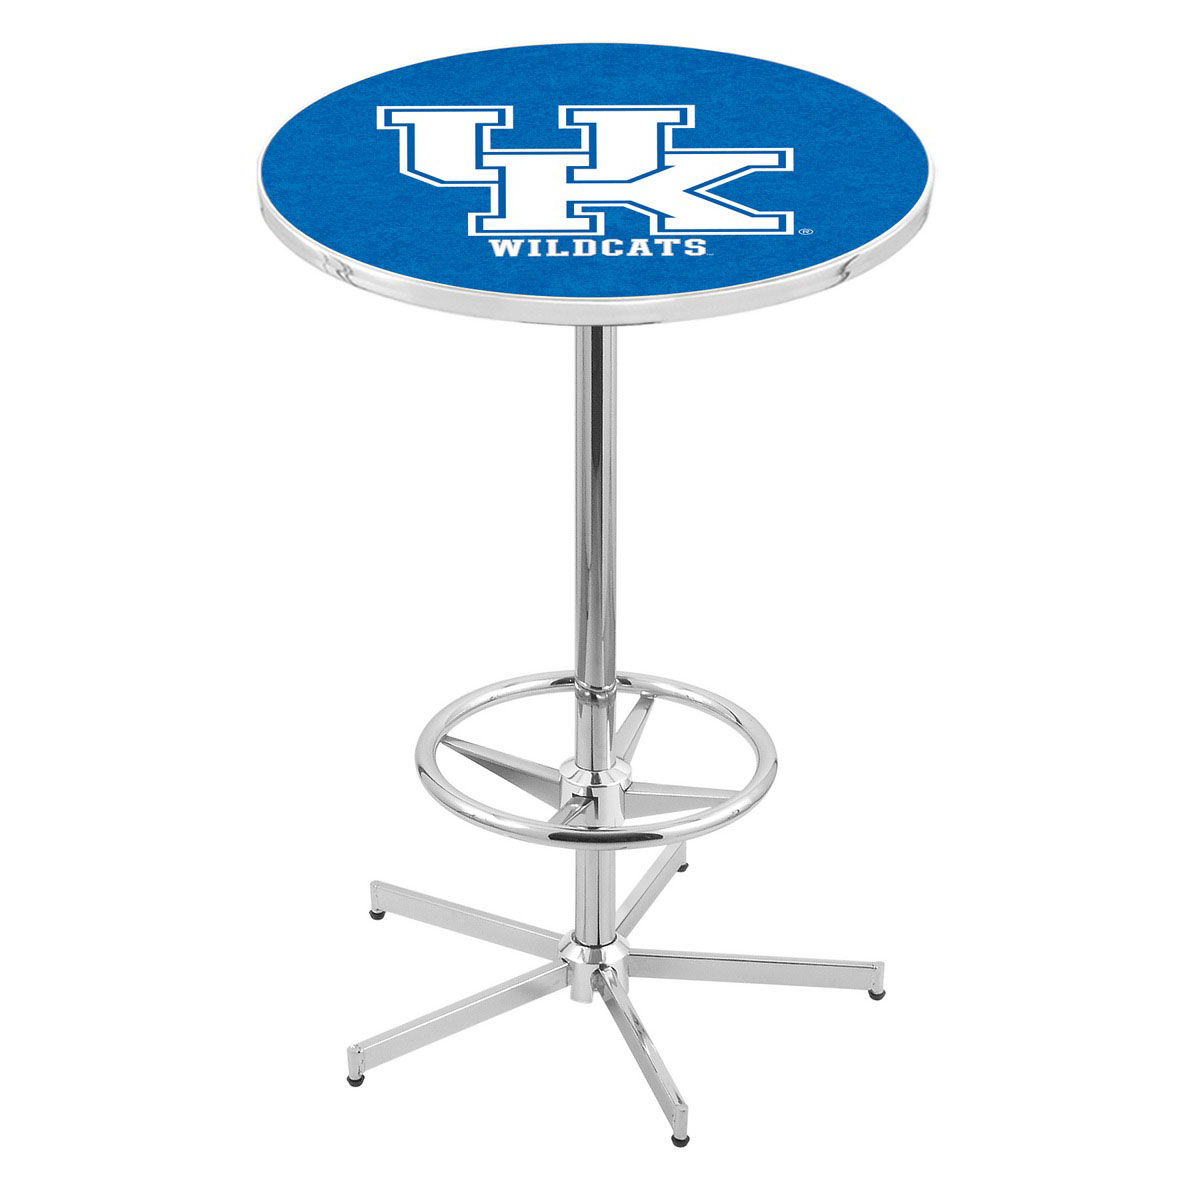 Superb-quality Chrome Kentucky Pub Table Product Photo